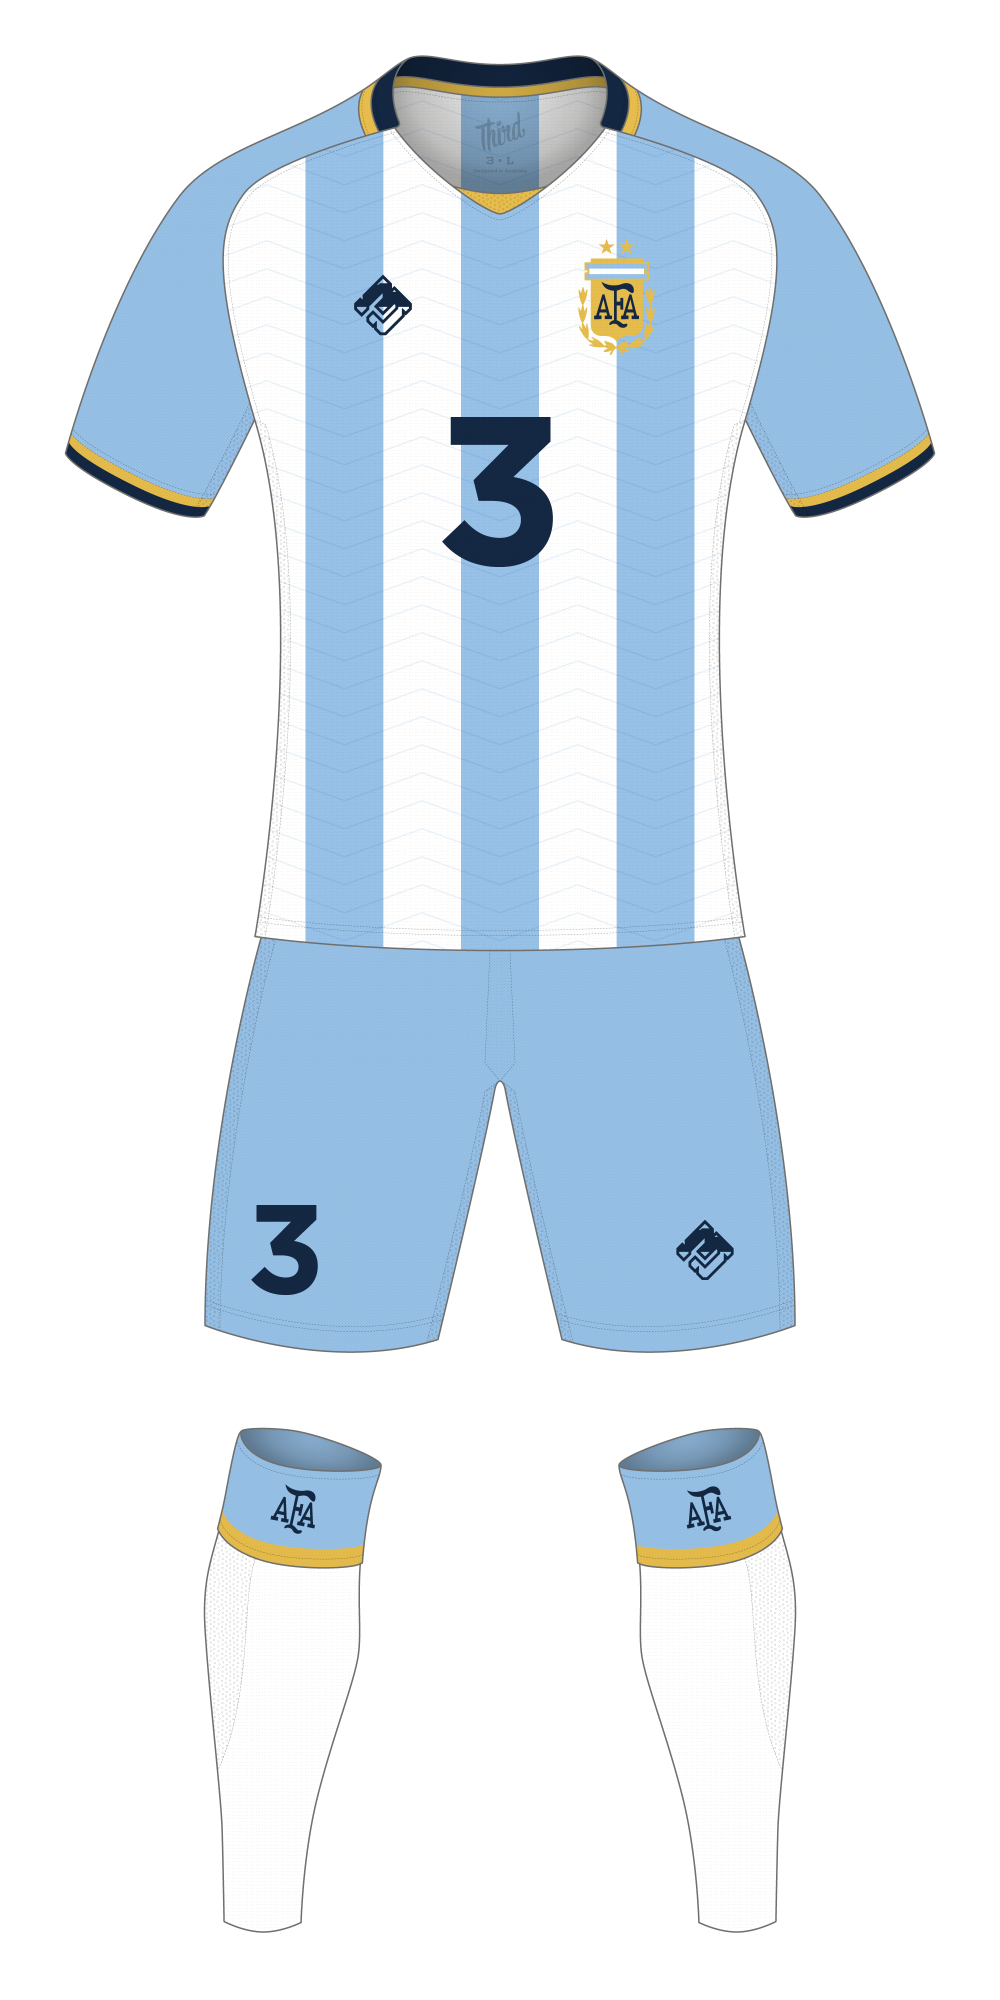 Argentina World Cup 2018 concept